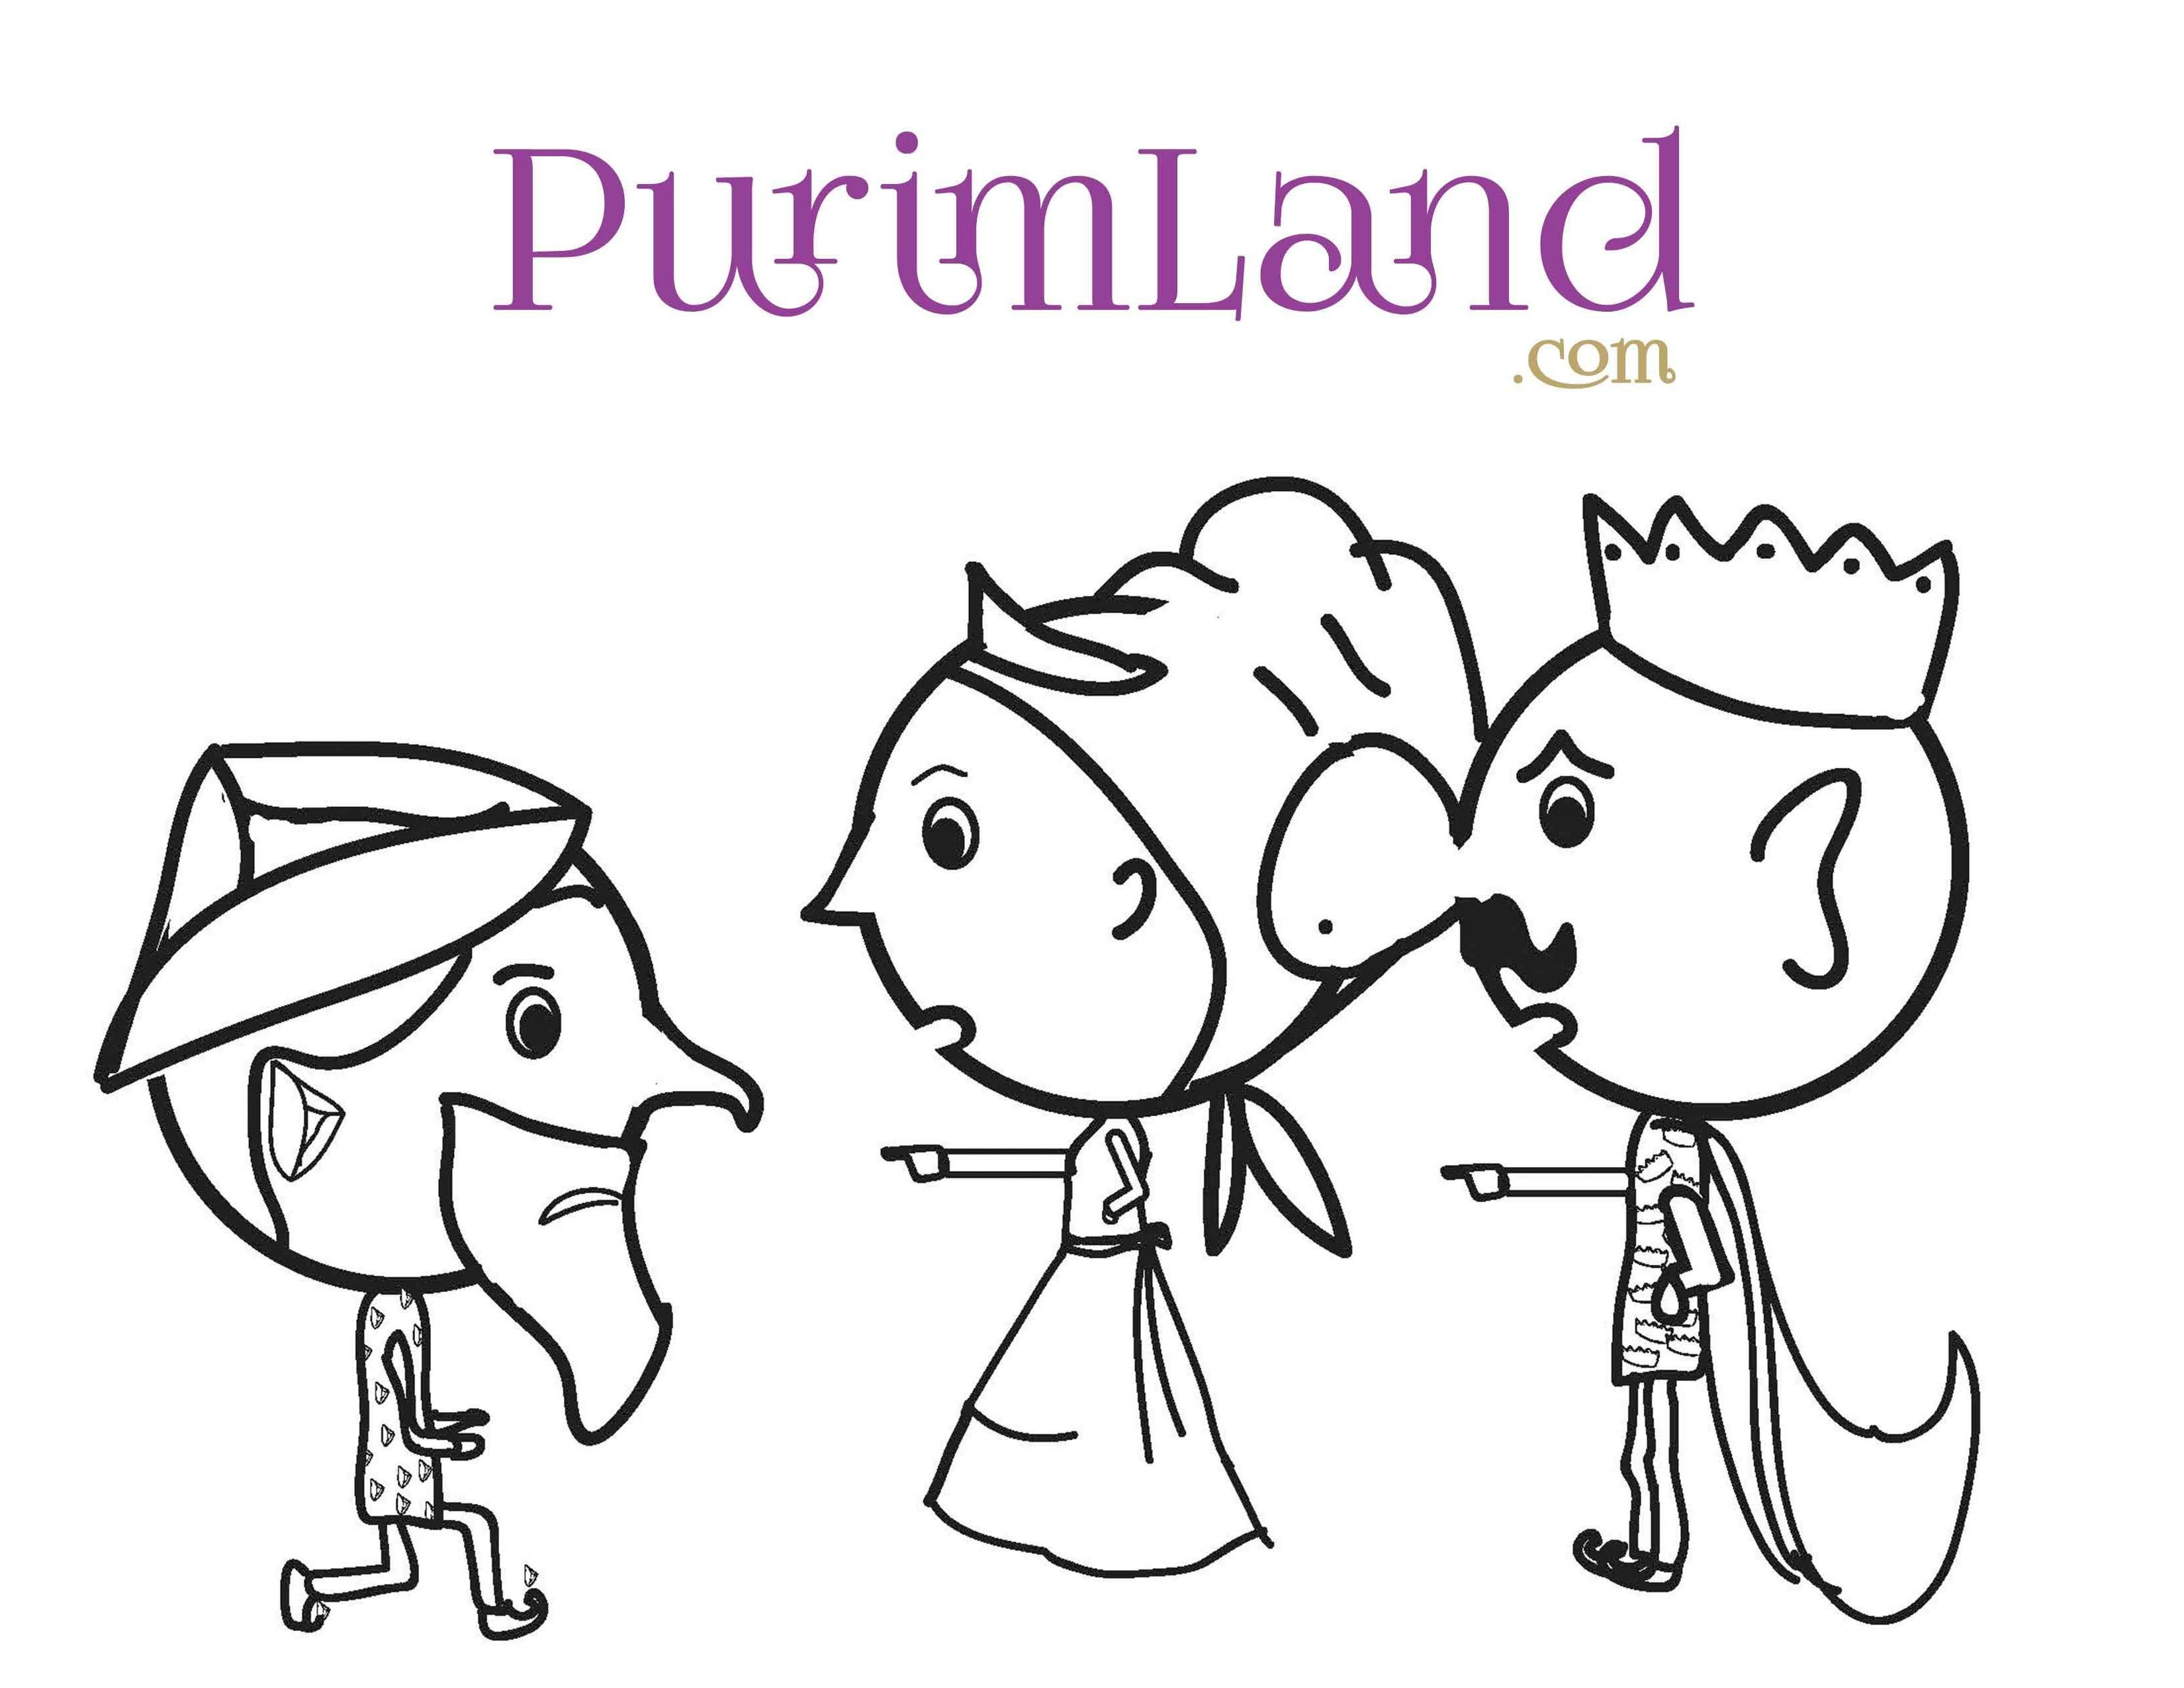 Coloring Pages Part 1 - PurimLand